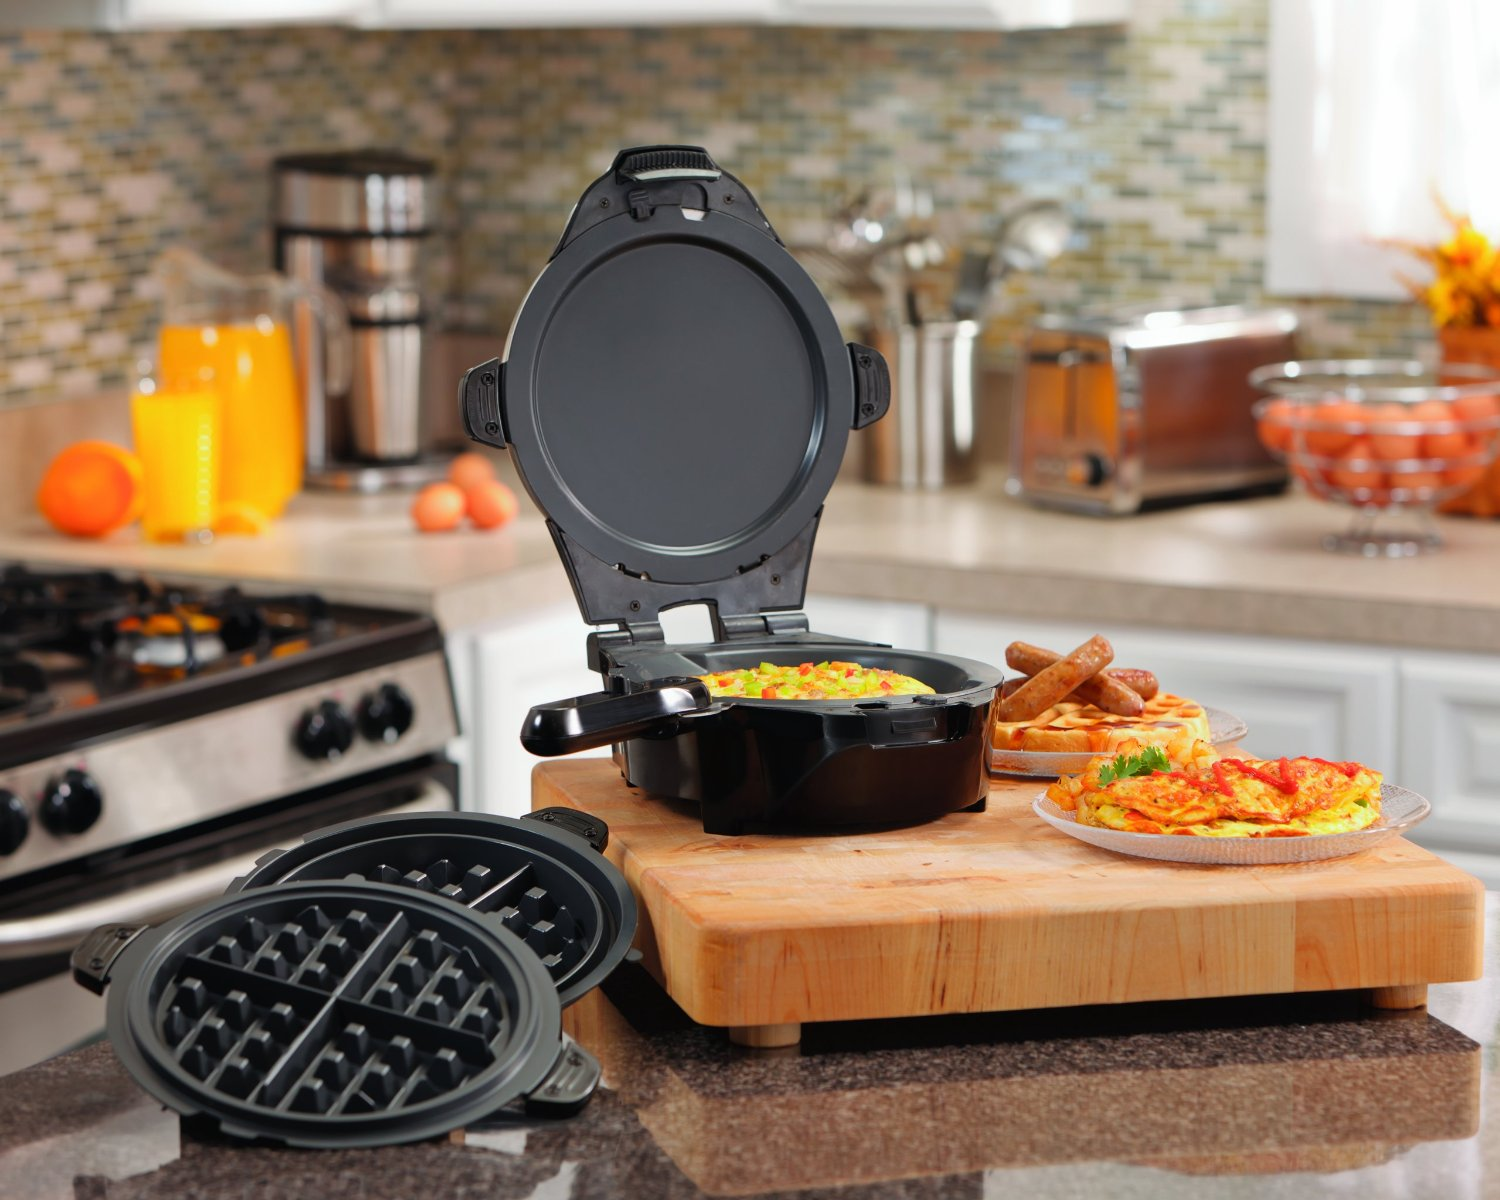 hamilton-beach-26046-the-breakfast-master-skillet-and-waffle-maker